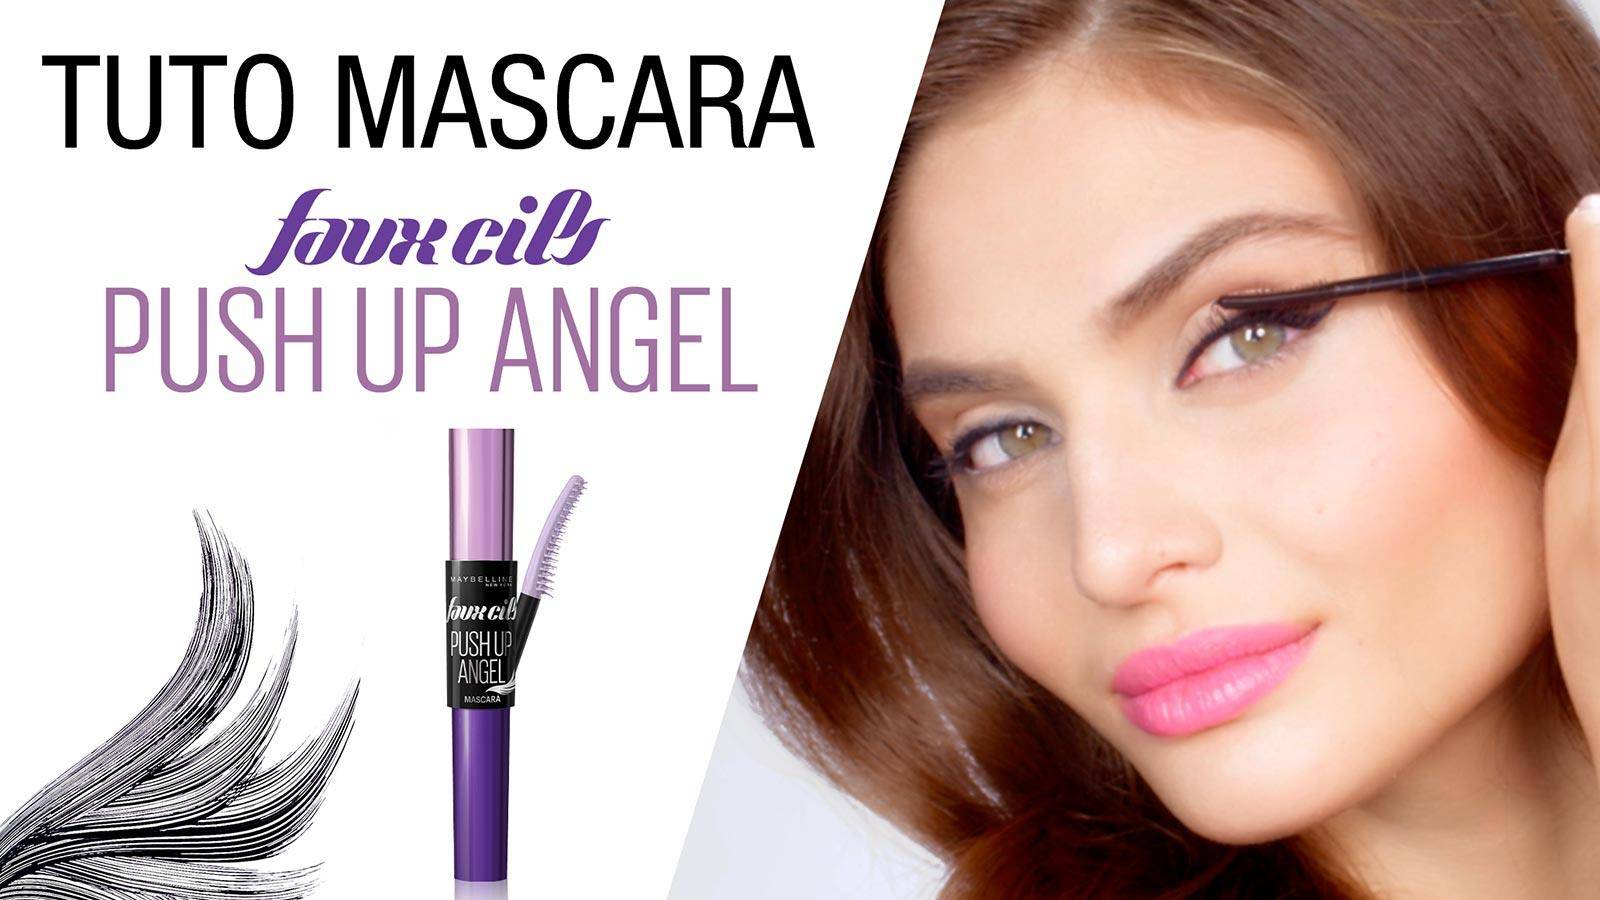 maybelline-push-up-angel-get-the-look-video-16x9